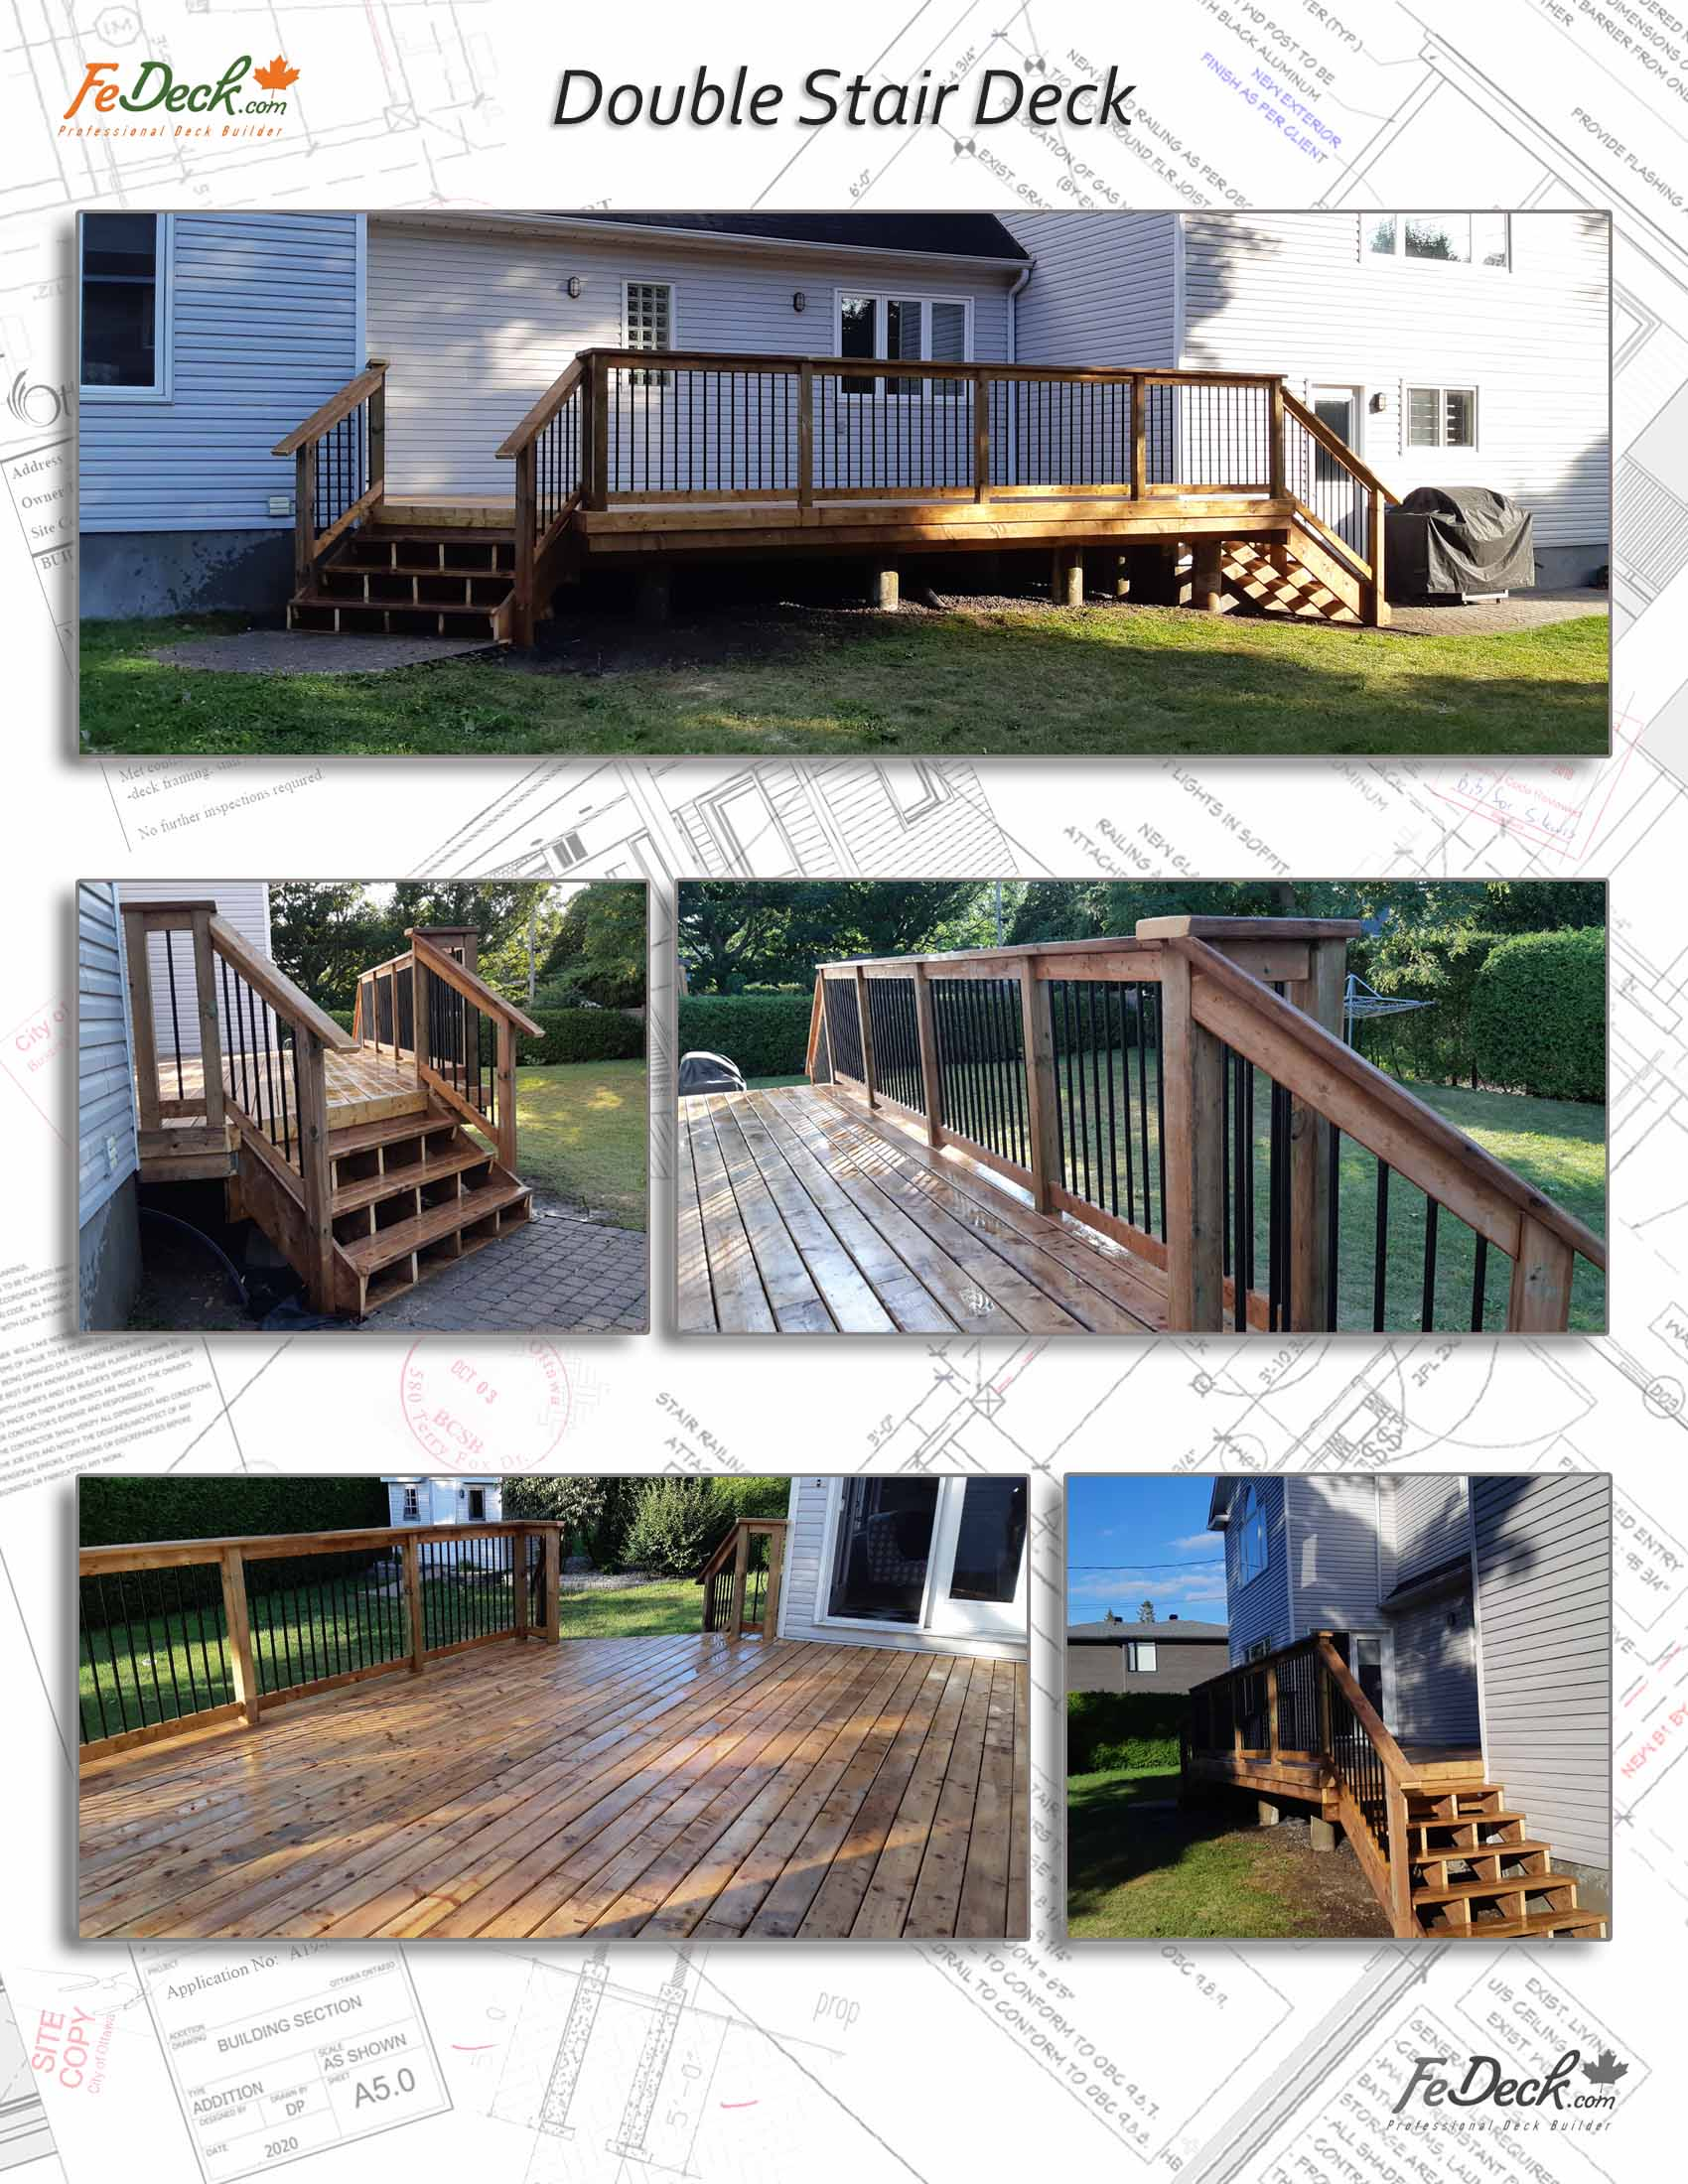 Double Stair Decks